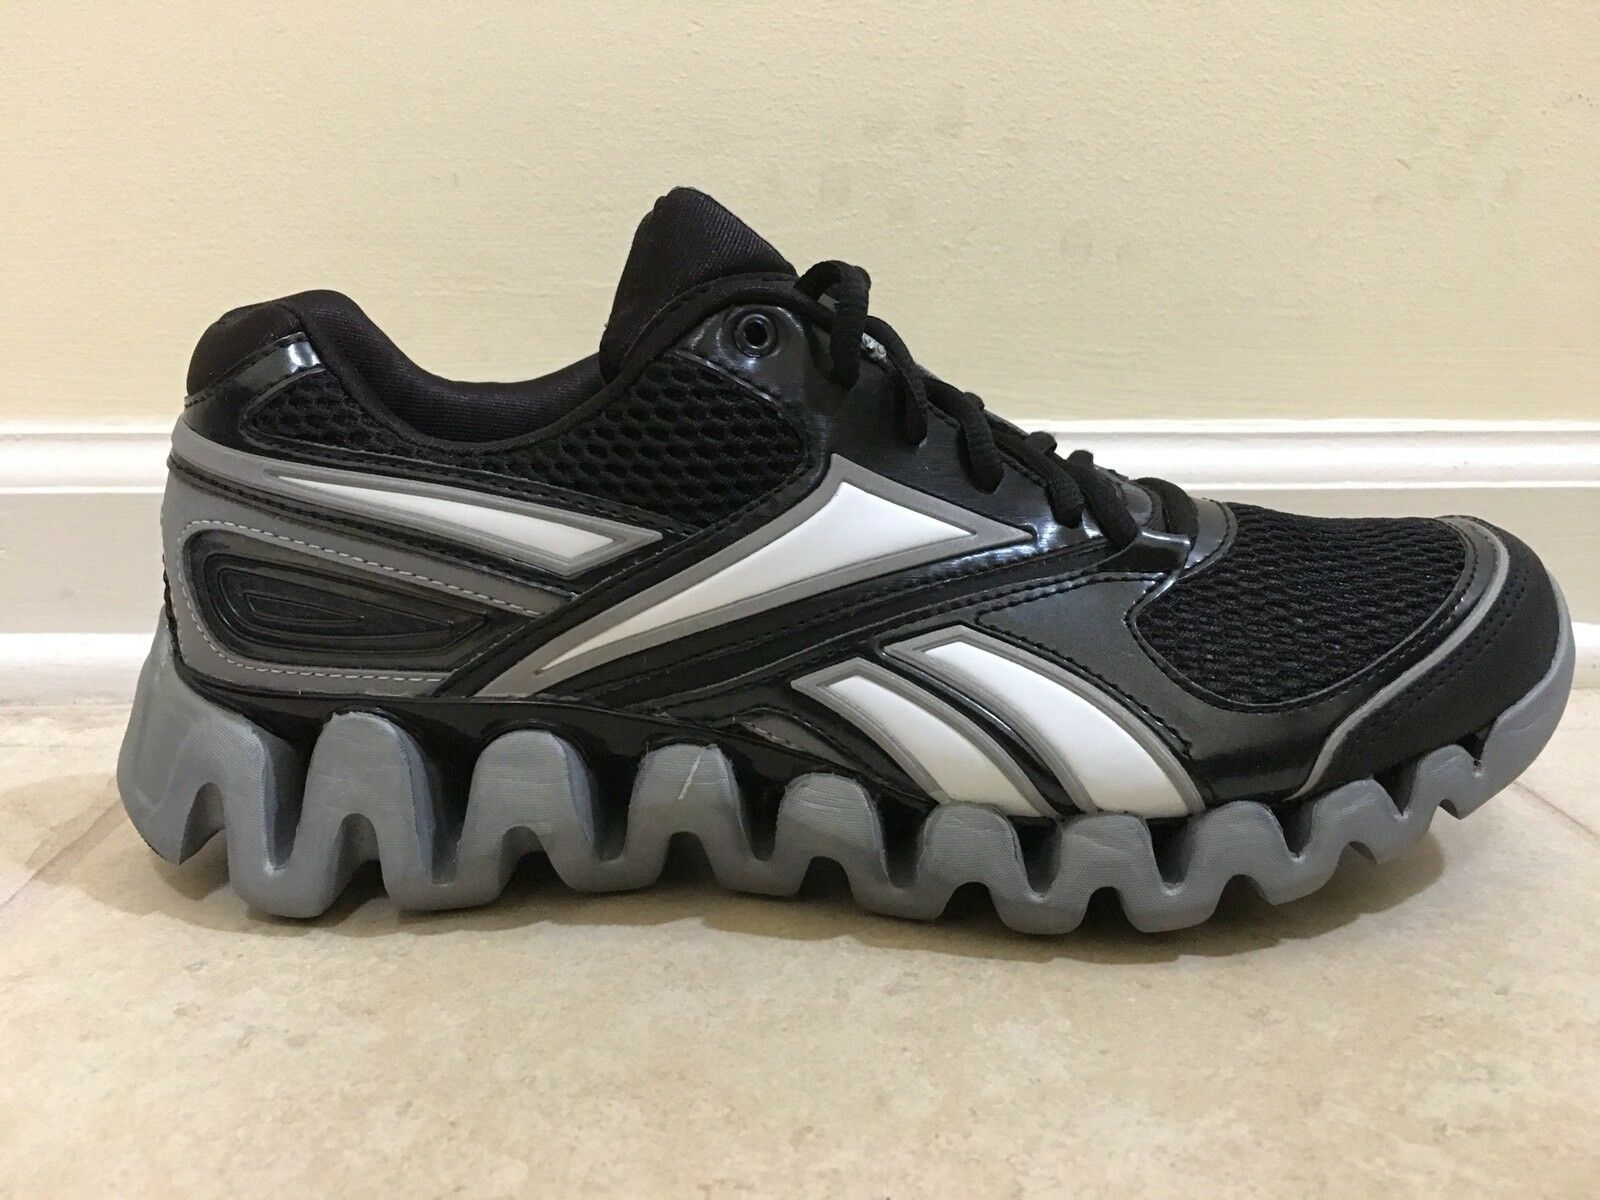 NEW MENS REEBOK ZIGFUEL ZIG TECH J20855  RUNNING SHOES US 10 % AUTHENTIC